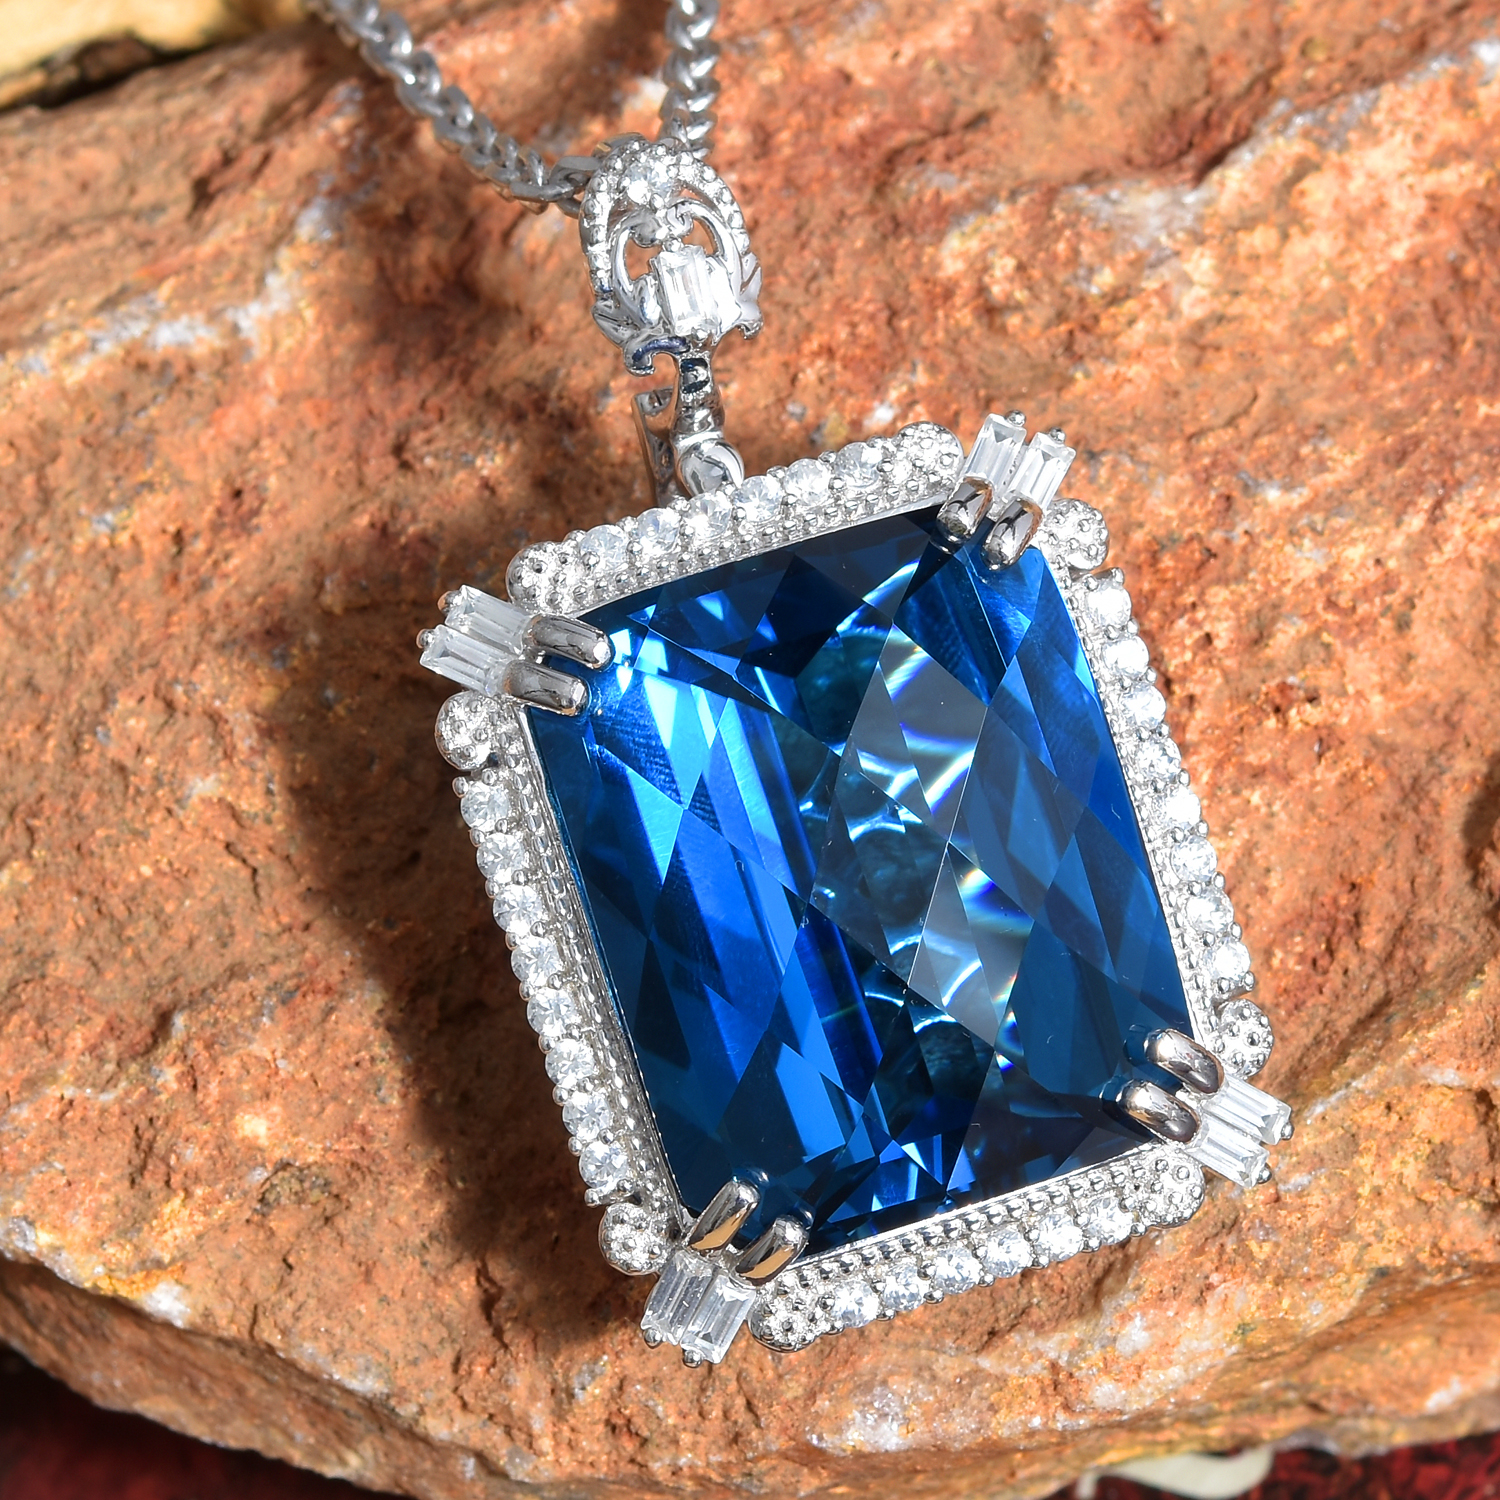 London Blue Topaz, Cambodian Zircon Pendant with Rope Necklace (20 in) in  Platinum Over Sterling Silver 122 47 ctw